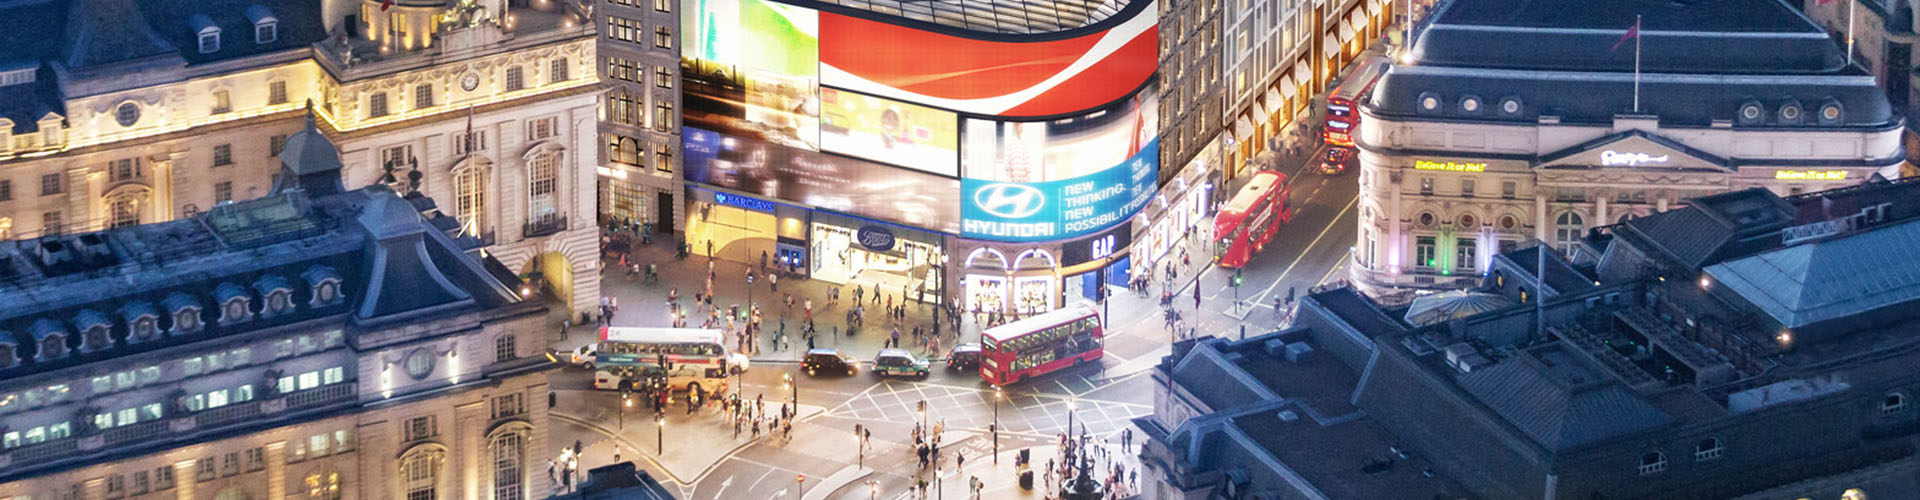 Piccadilly Circus - Discover London Tours